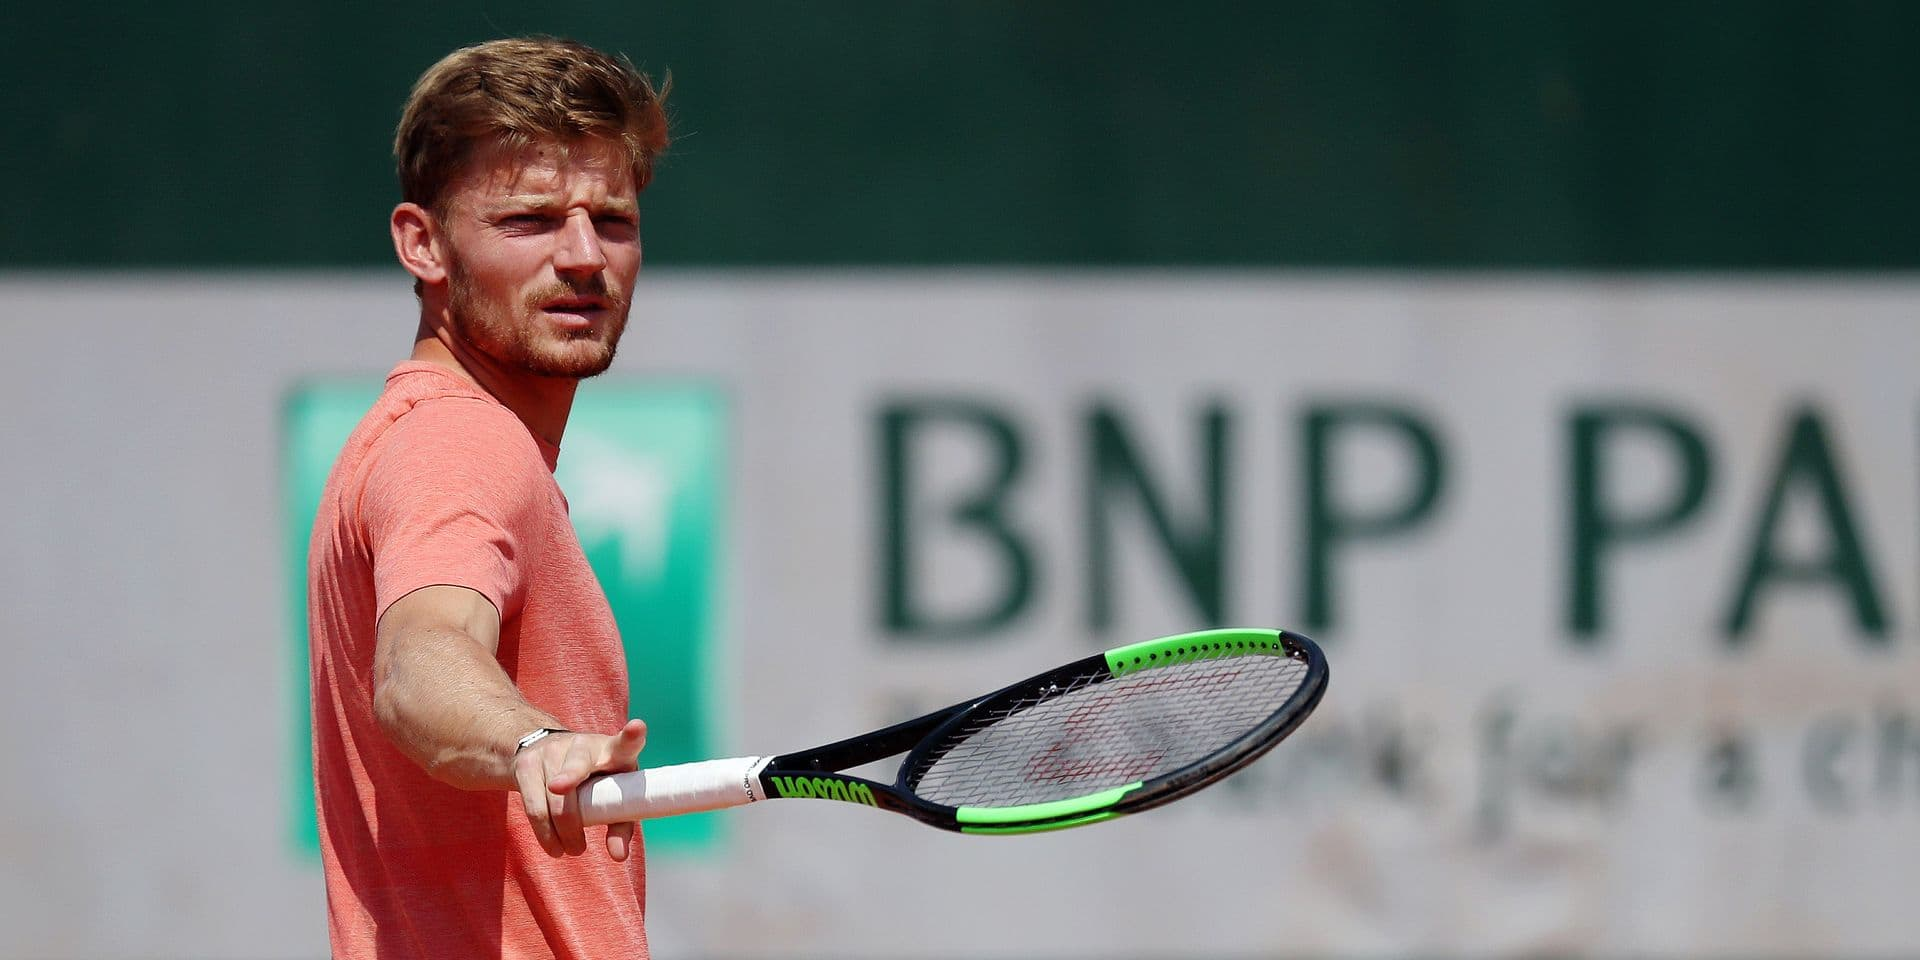 Belgian David Goffin pictured during a training session ahead of the Roland Garros French Open tennis tournament, in Paris, France, Friday 24 May 2019. The main draw of this year's Roland Garros Grand Slam takes place from 26 May to 9 June. BELGA PHOTO VIRGINIE LEFOUR